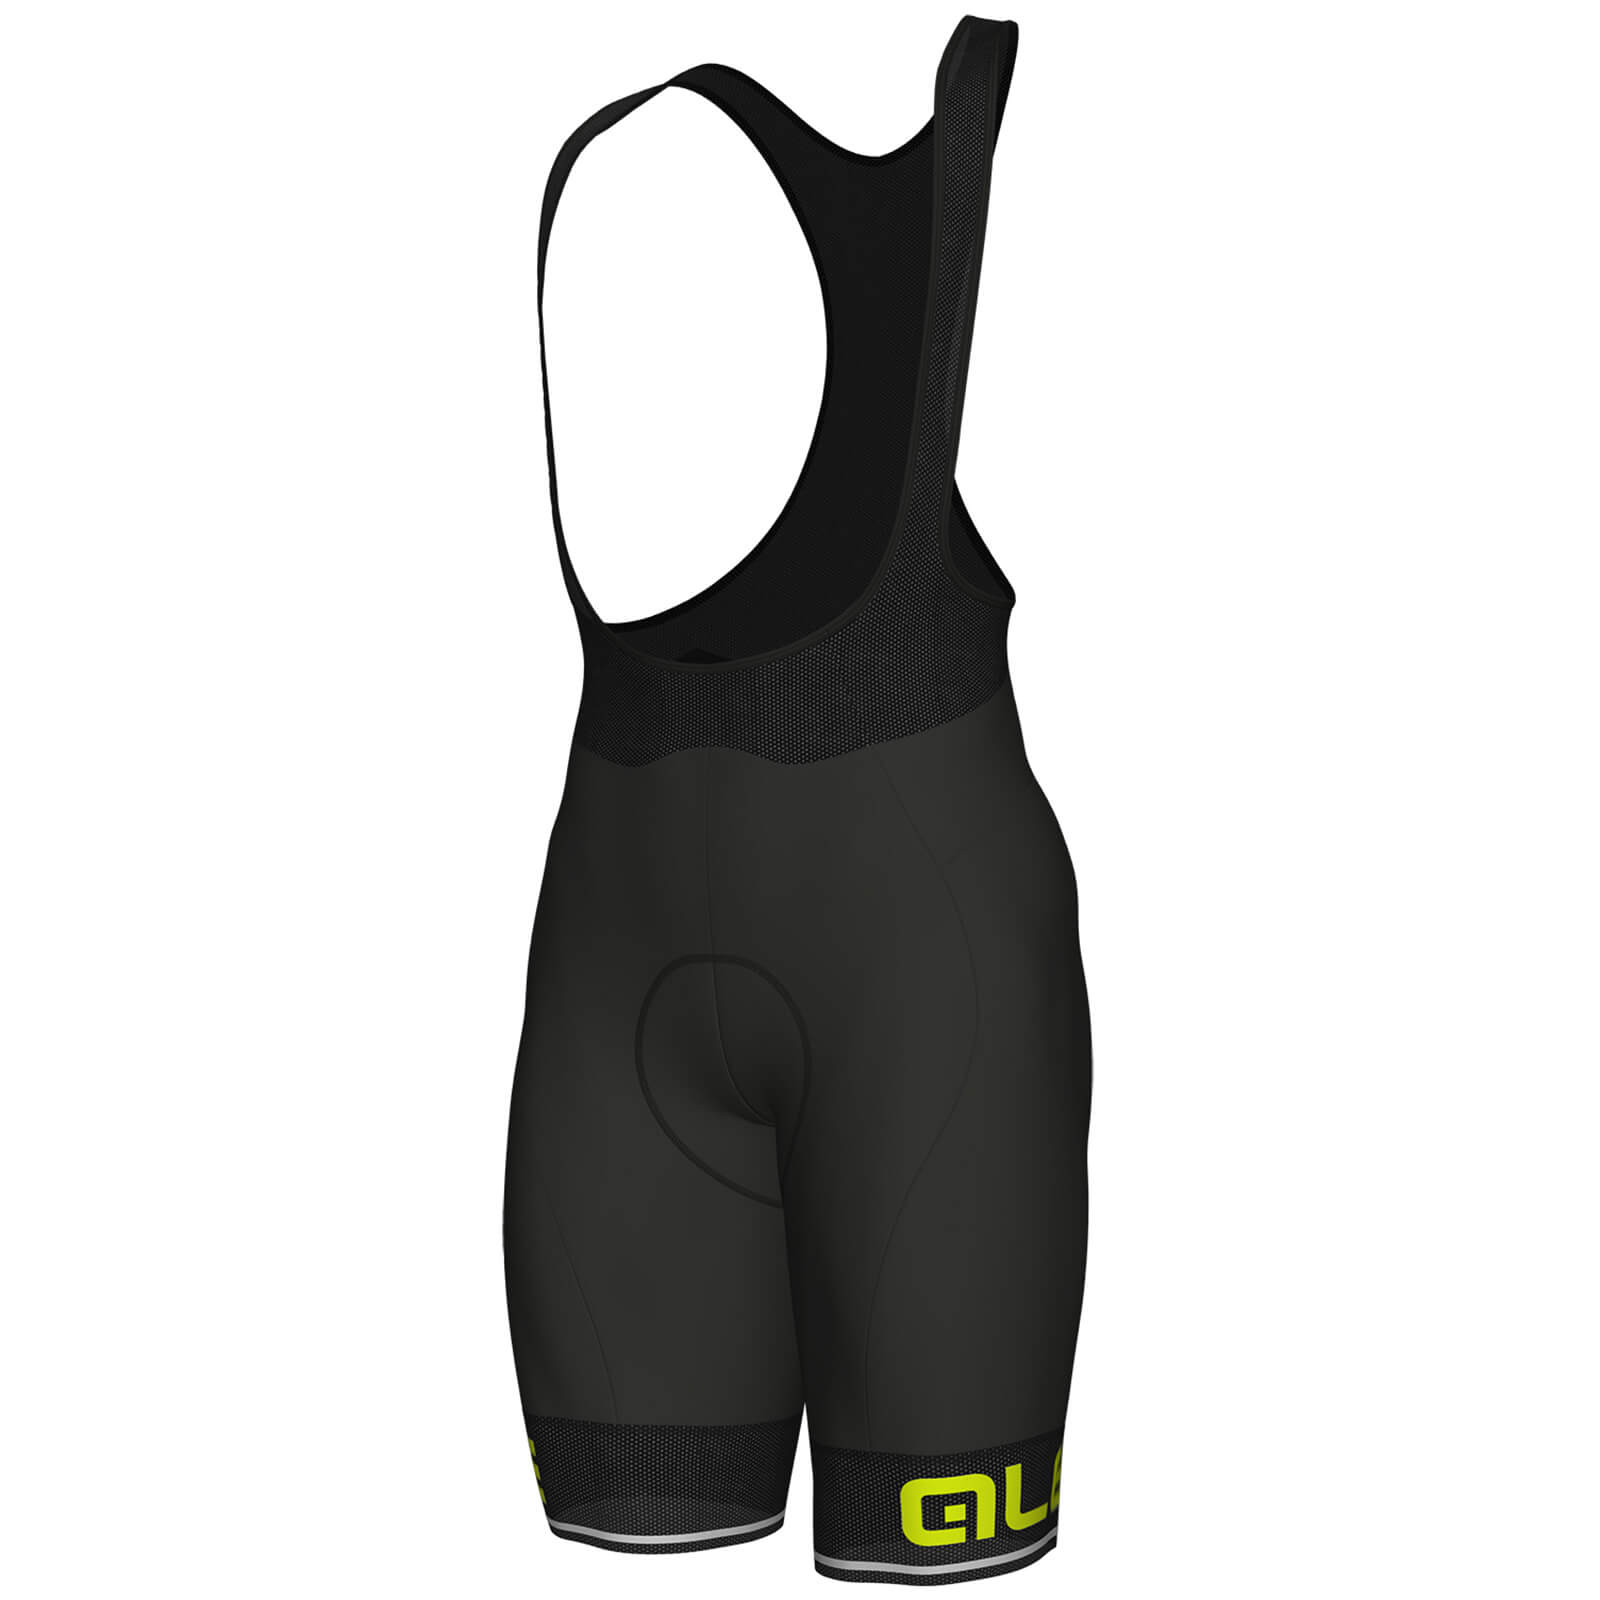 Alé Cora Bib Shorts - Black/Yellow